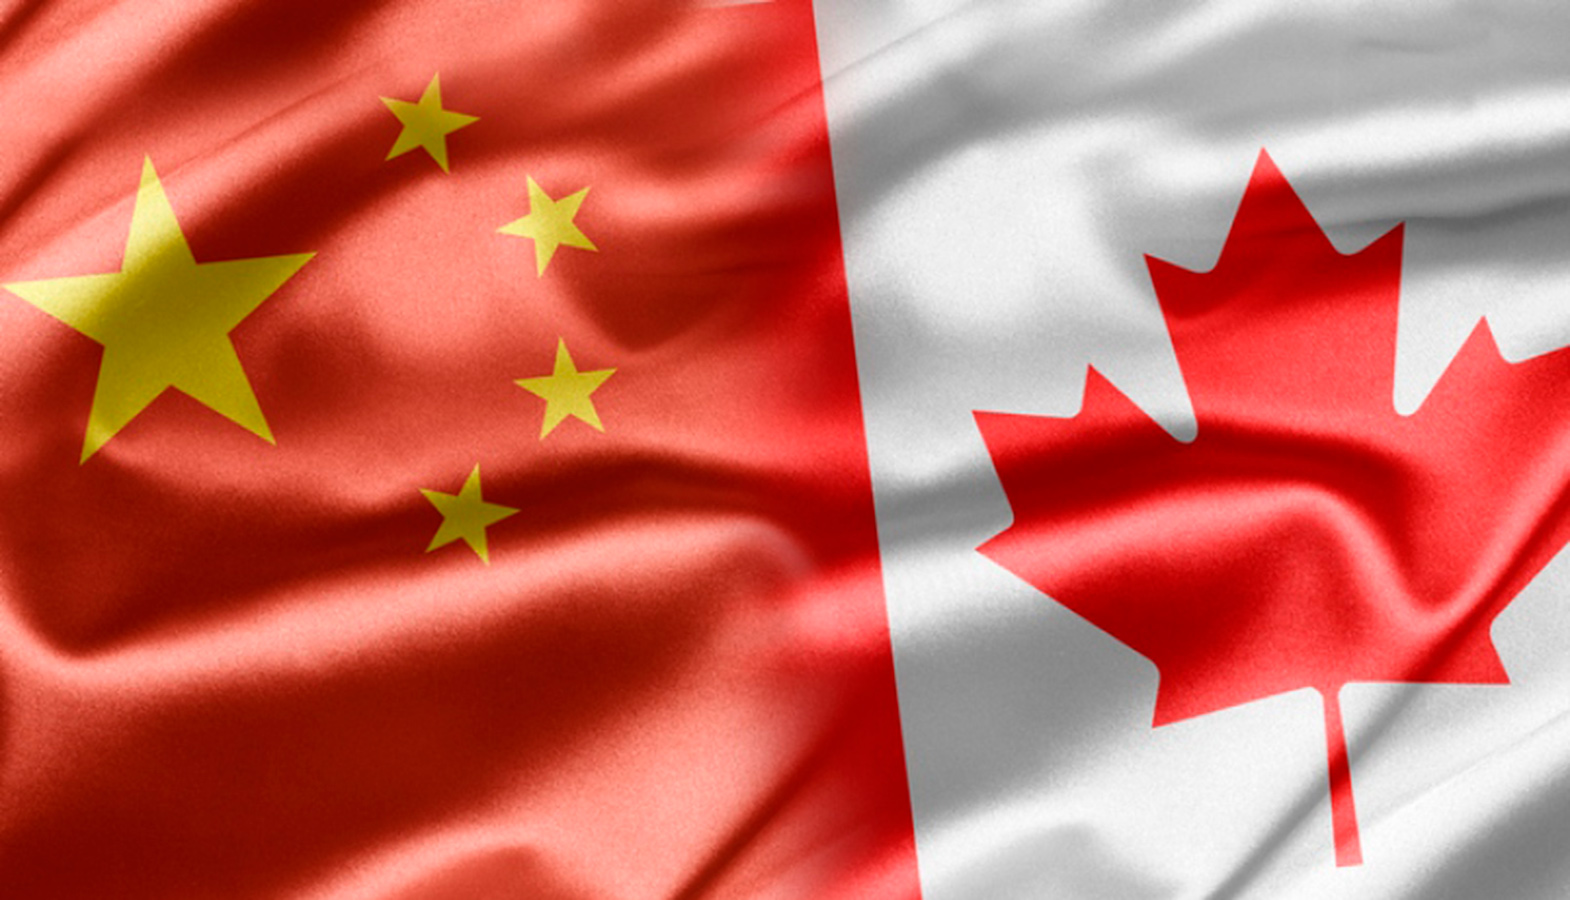 A Chinese Court Has Sentenced A Canadian Citizen Xu Weihong To Death For Drug Production